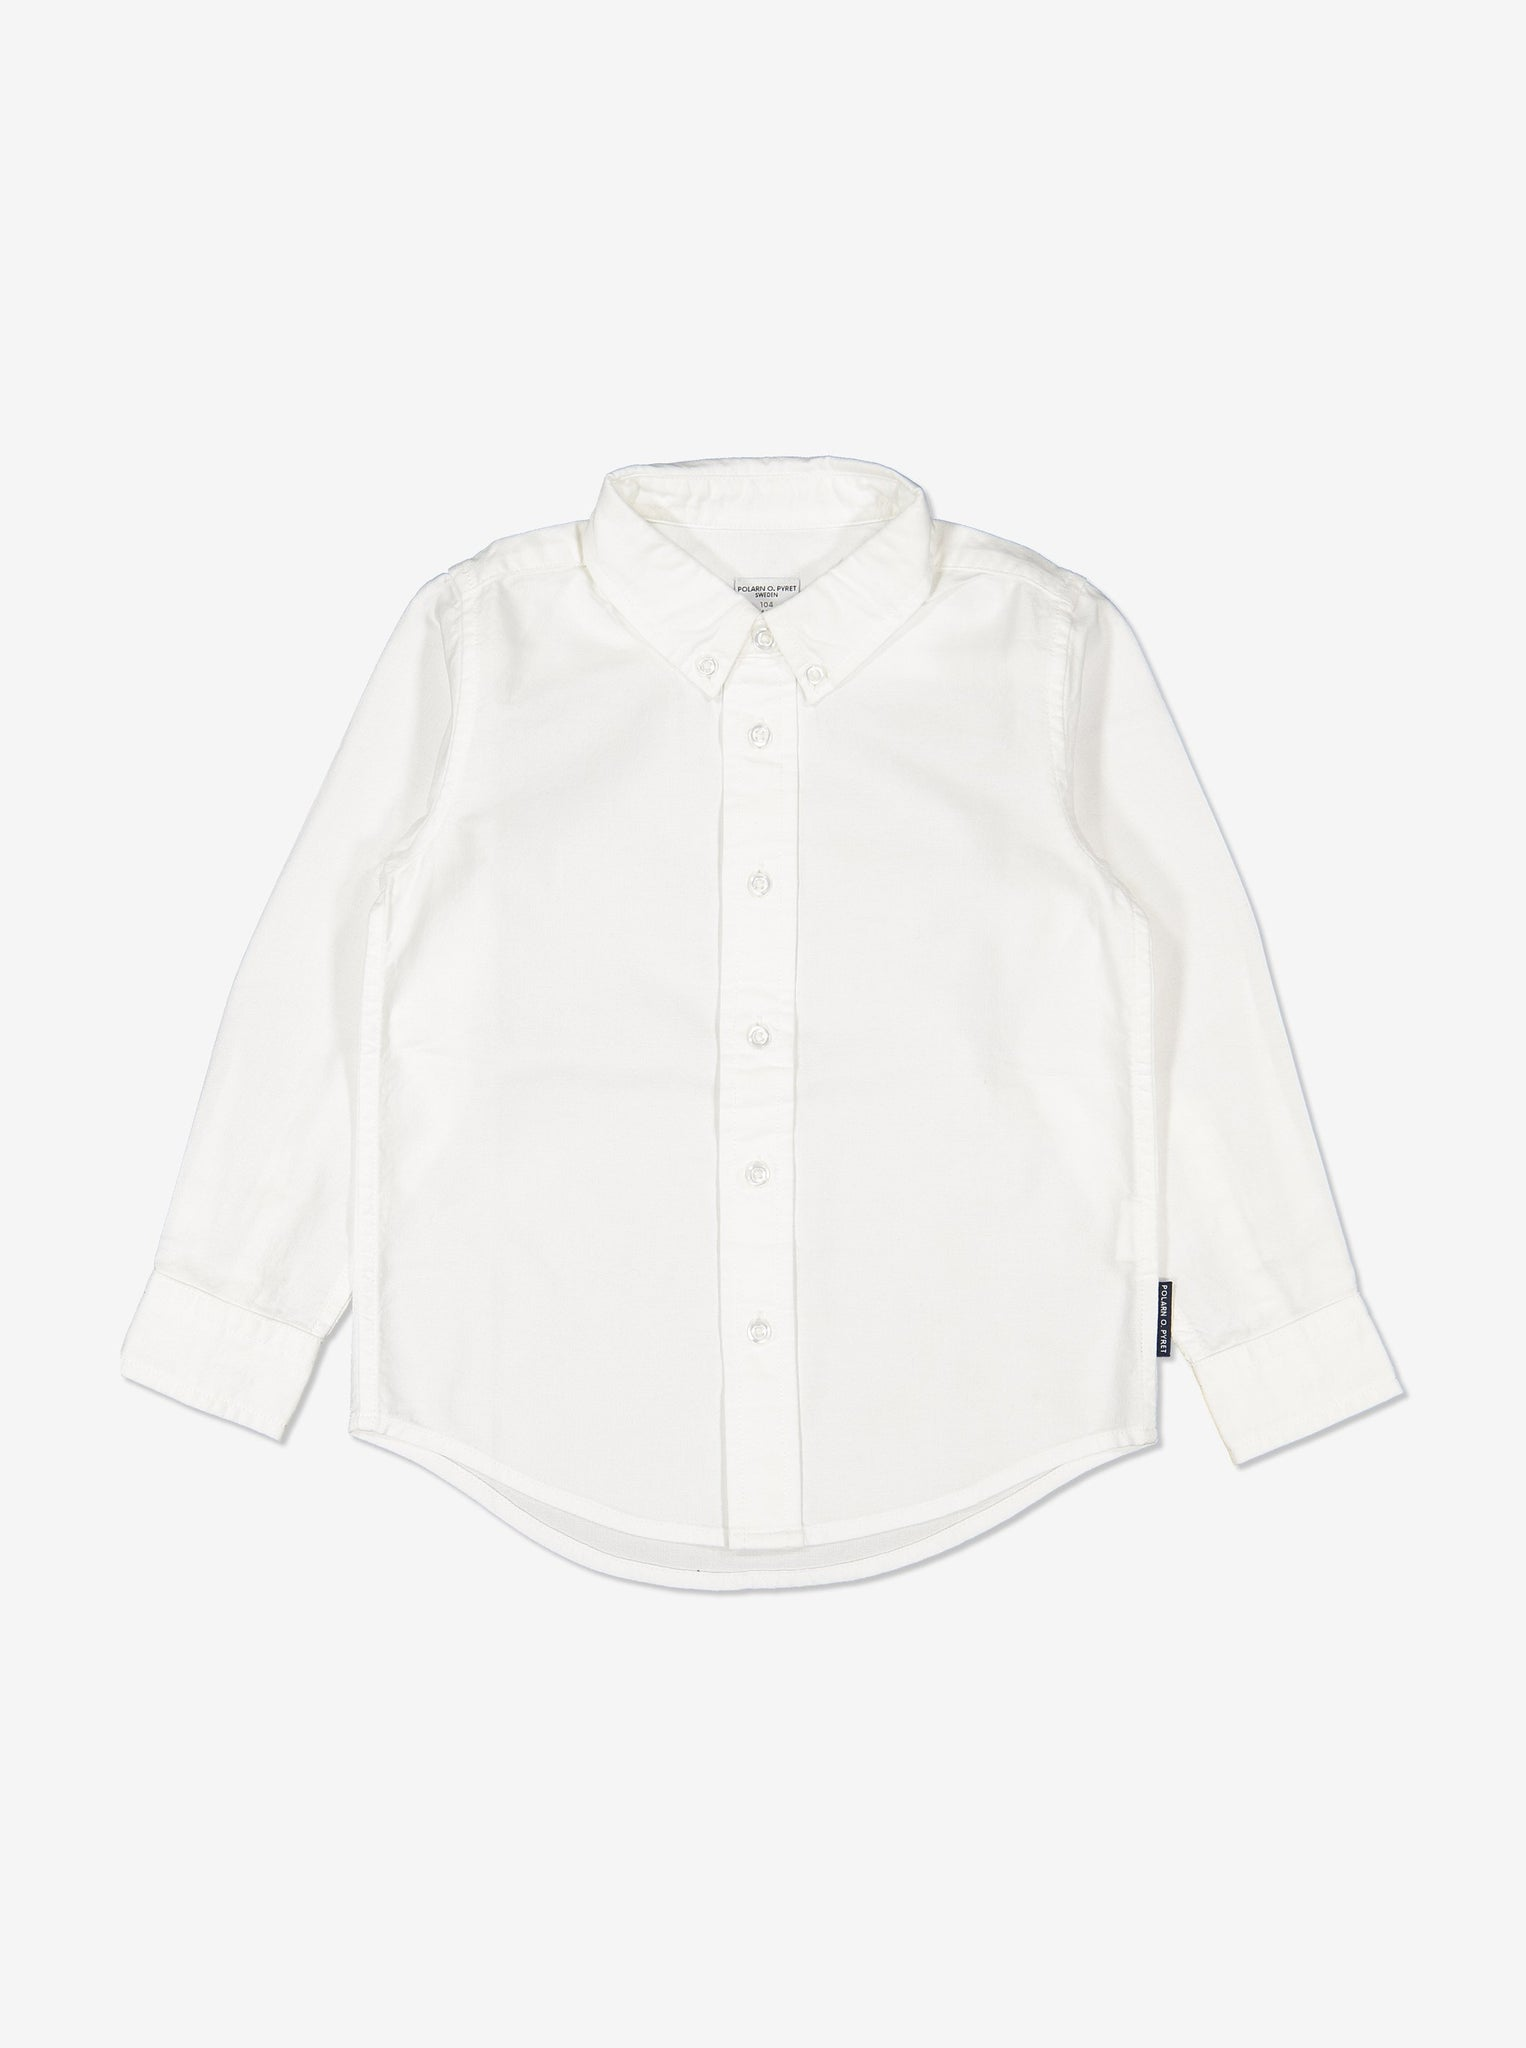 Boys White Kids White Shirt 1-12y